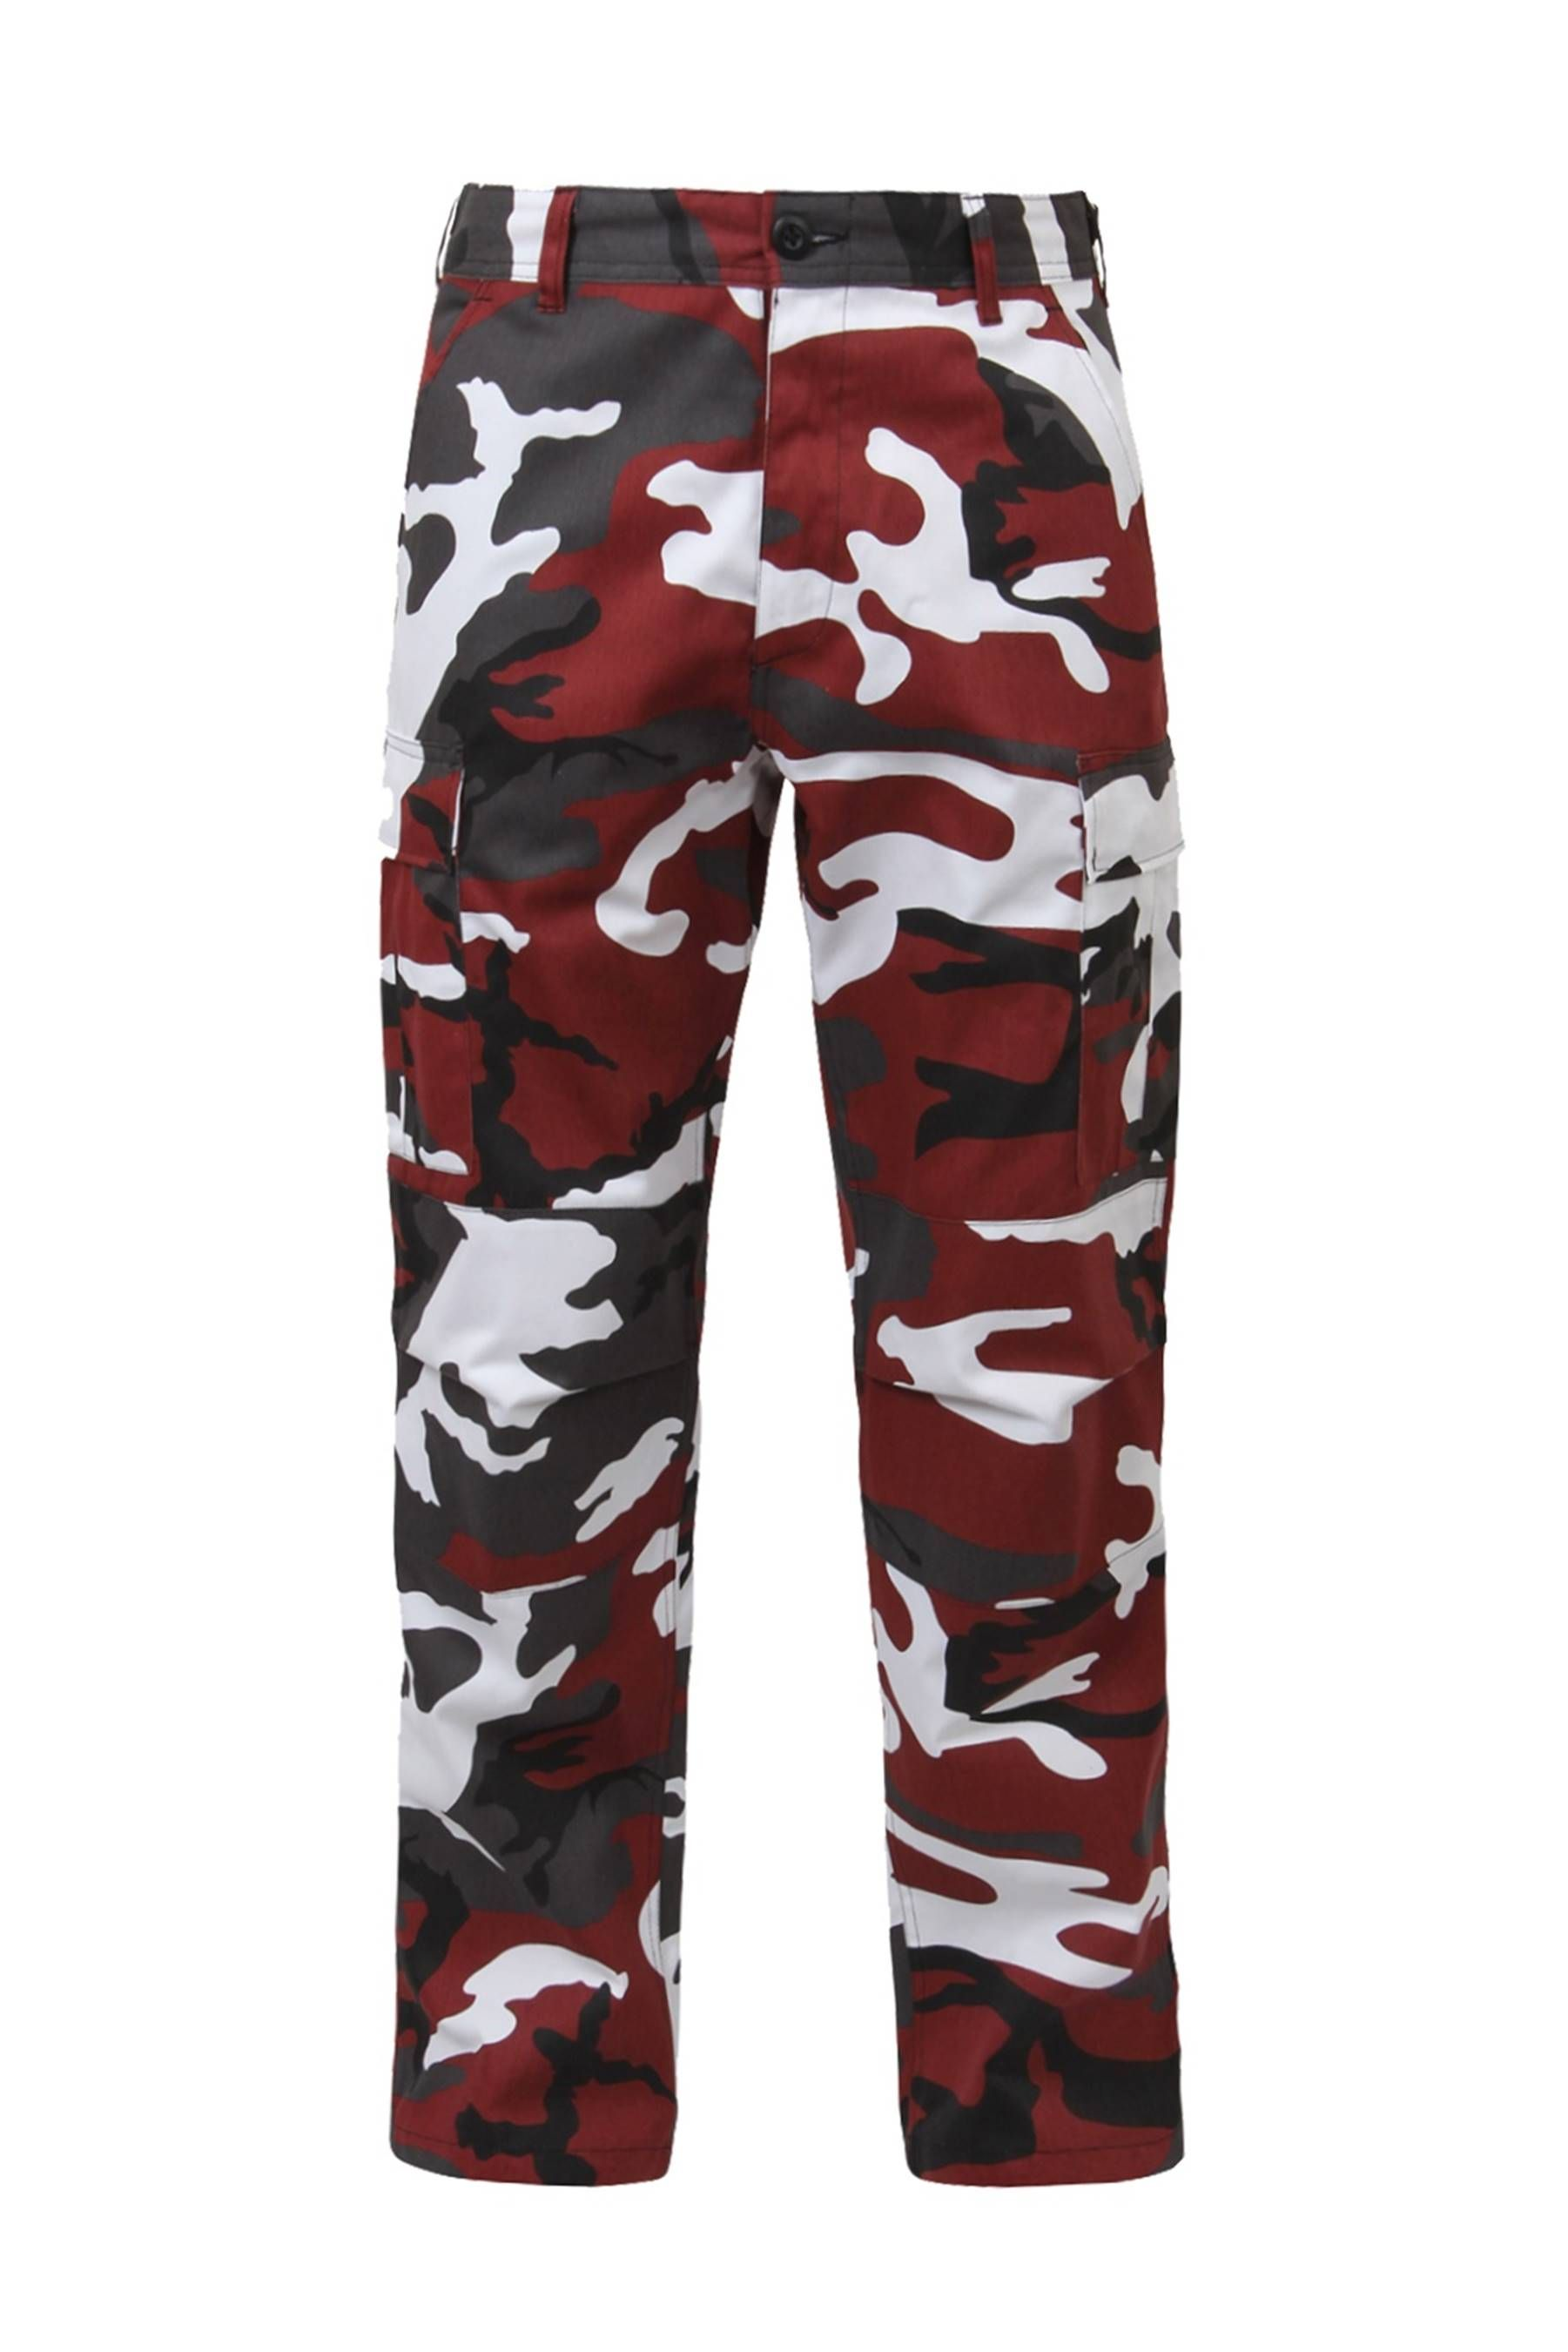 10f1a185ec3 Rothco Color Camo Tactical BDU Pant Red Camo